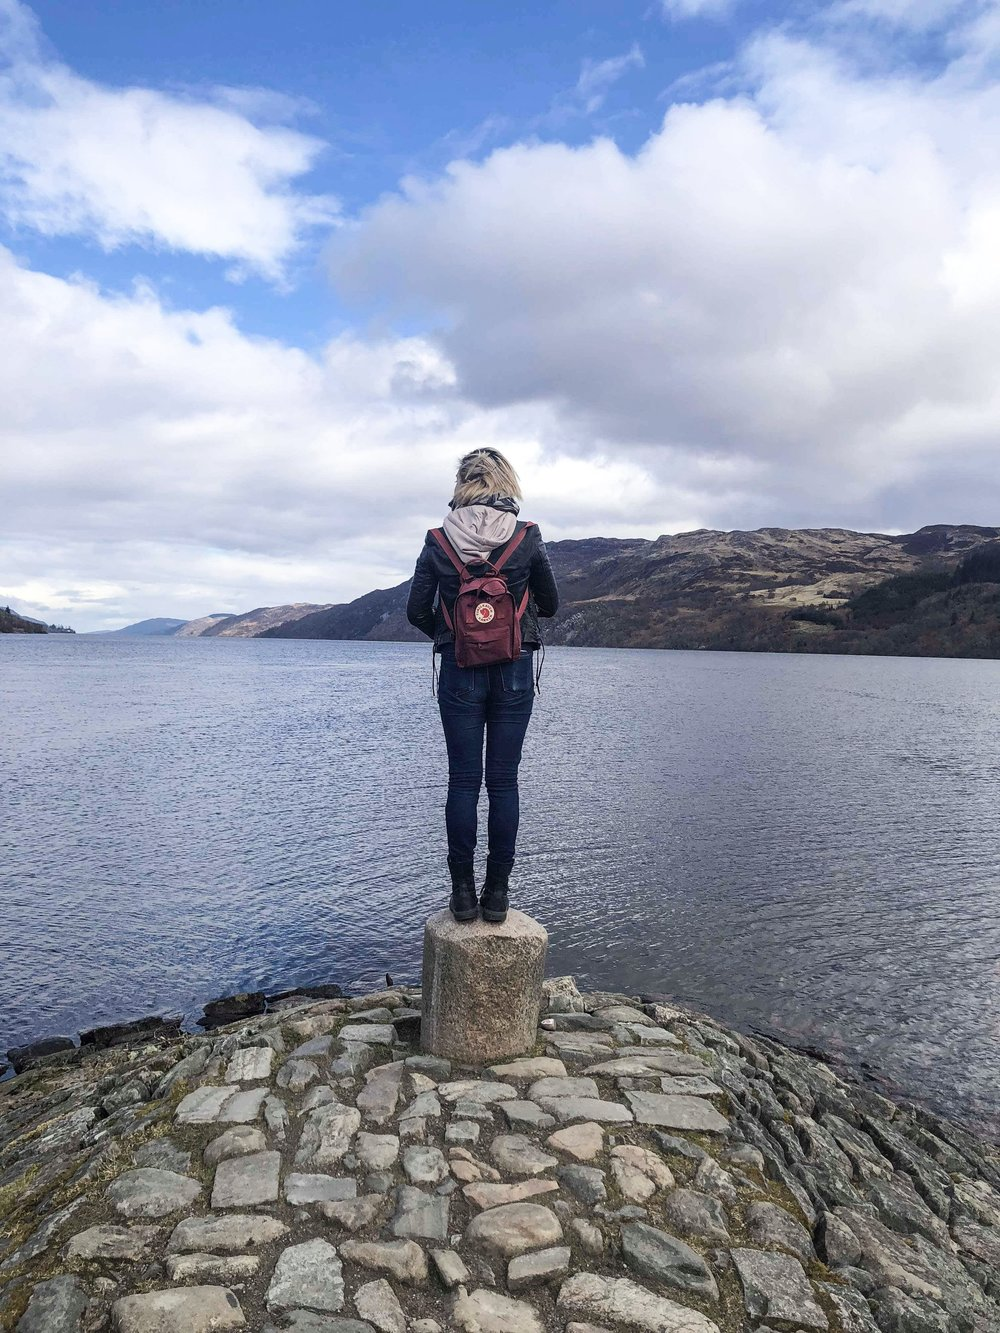 Looking for the Loch Ness monster, or for myself?